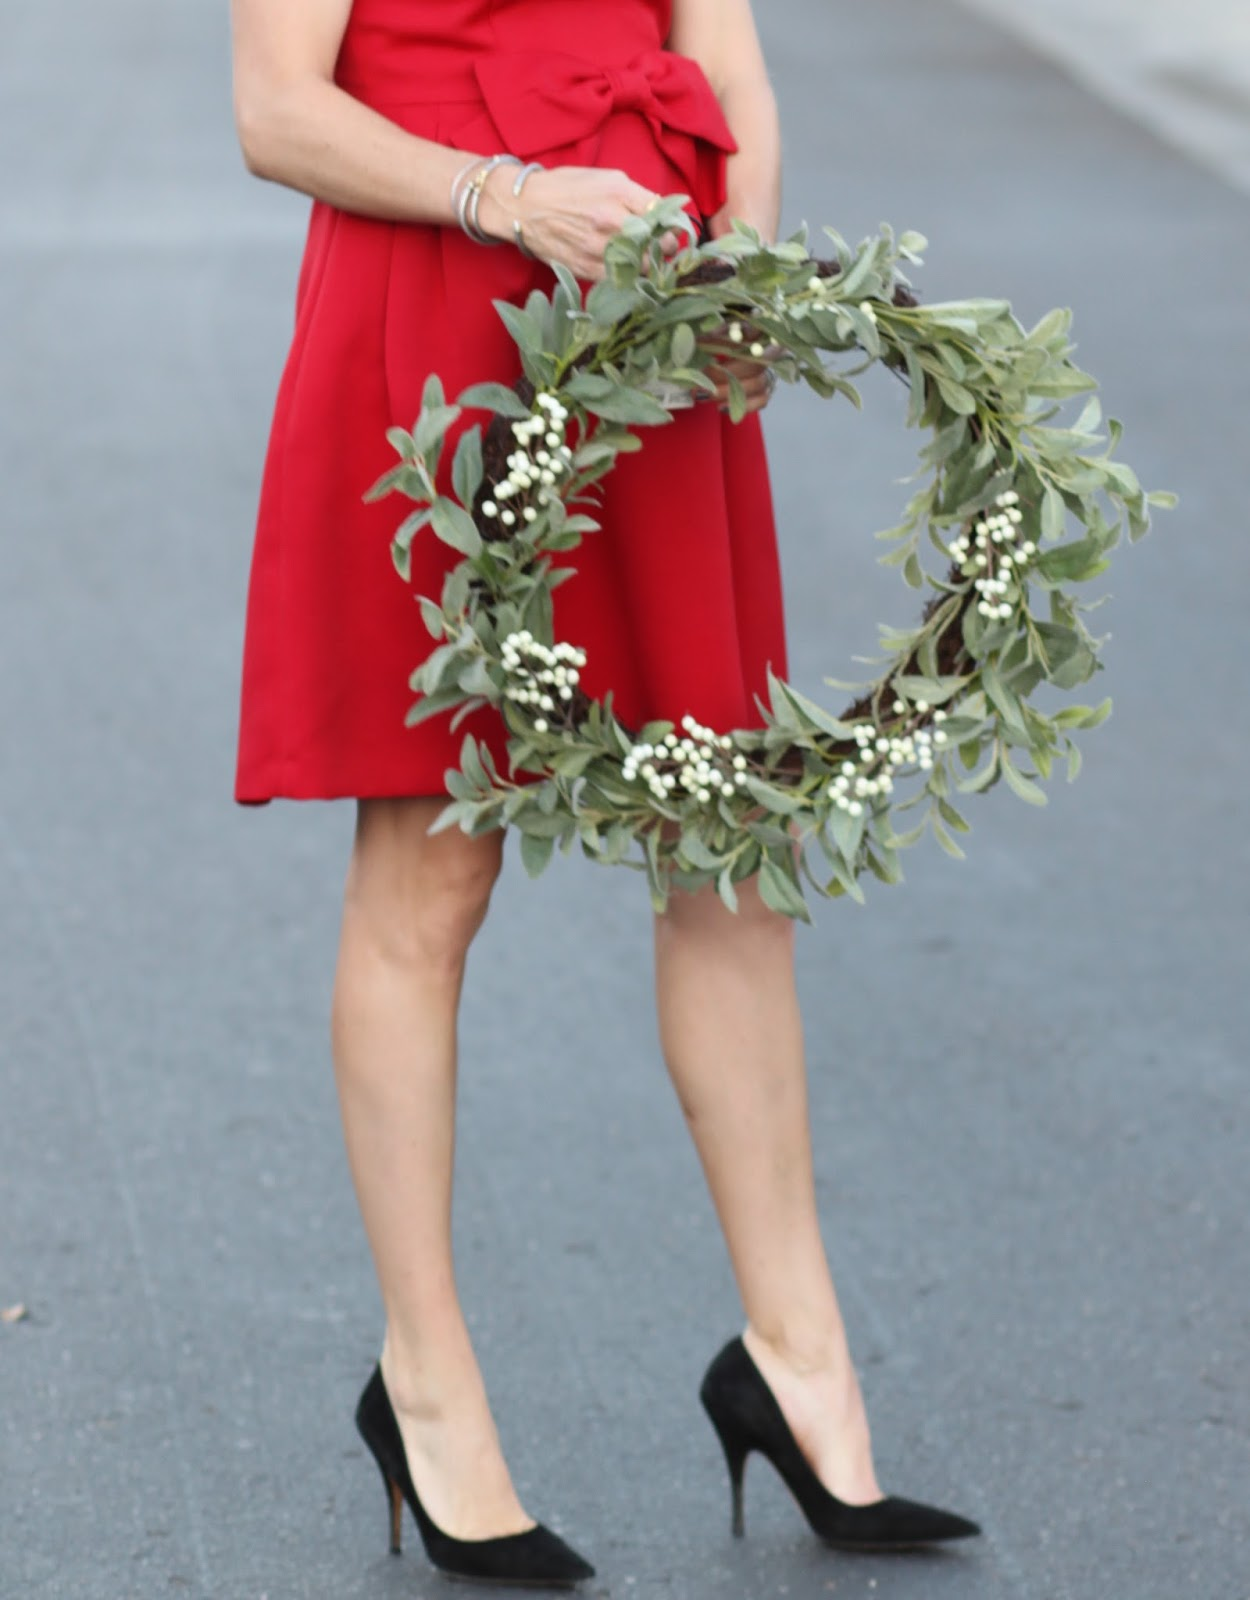 wreath and dress